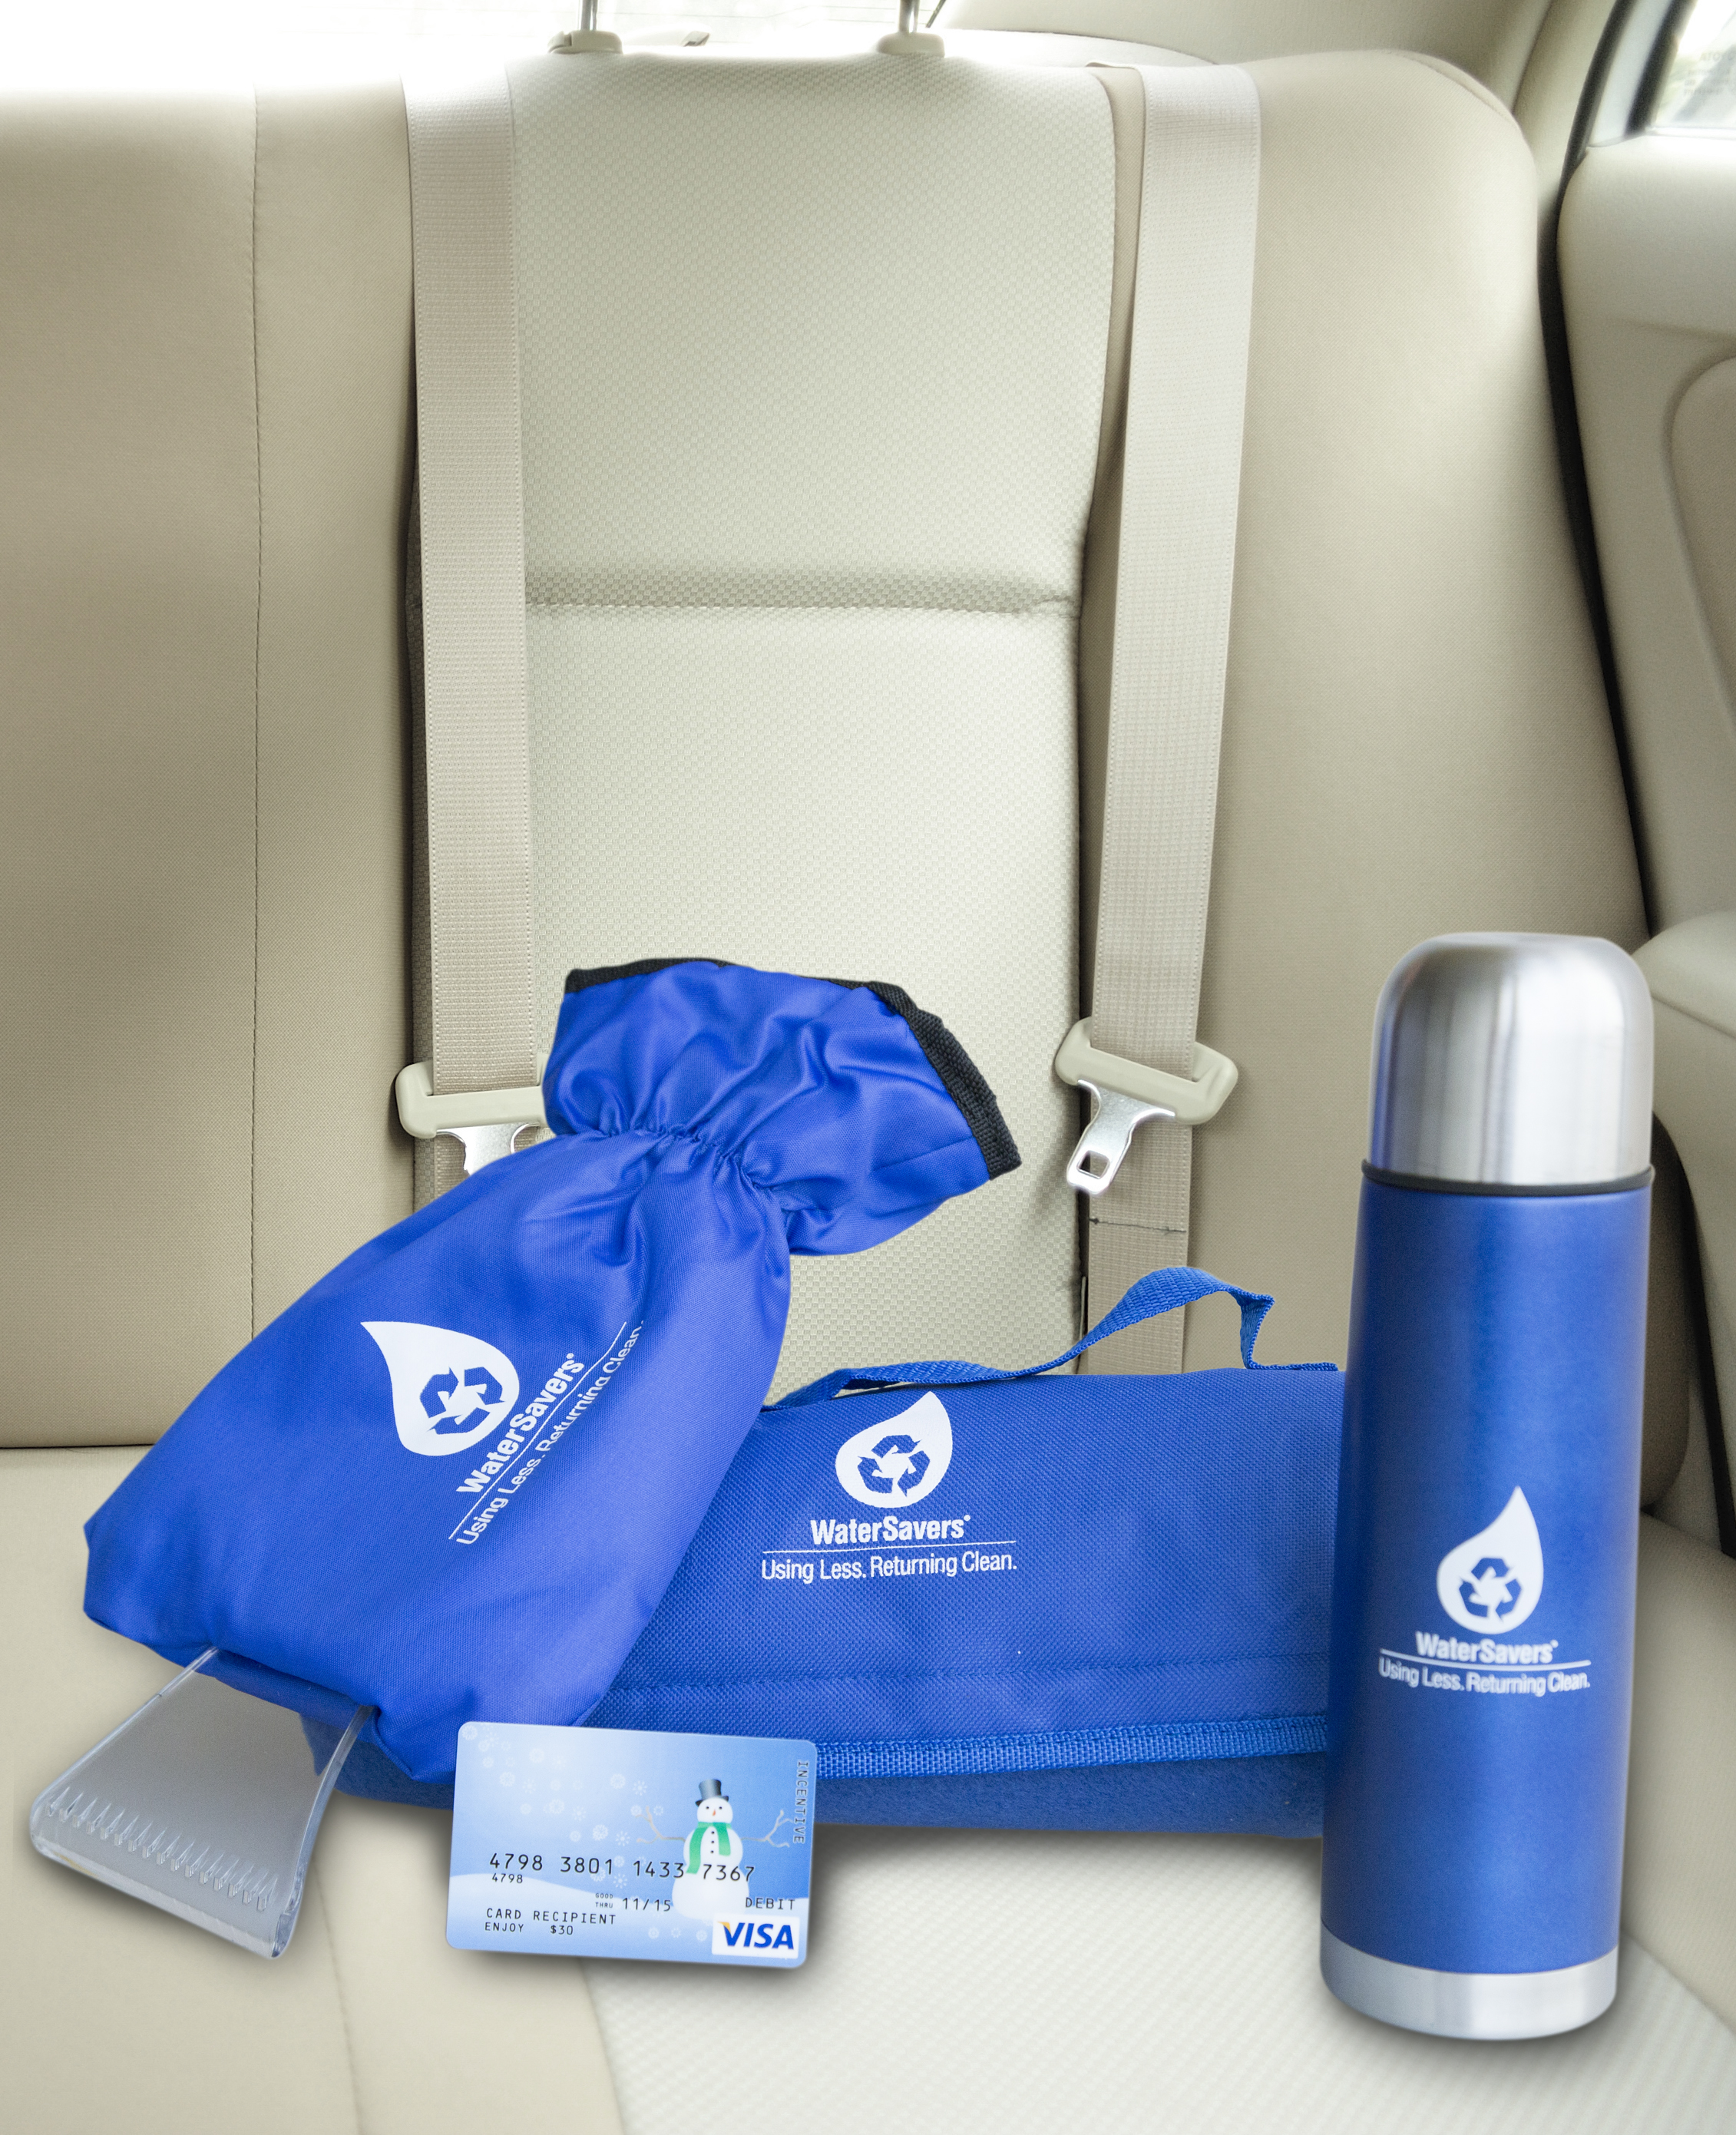 WaterSavers winter prize package